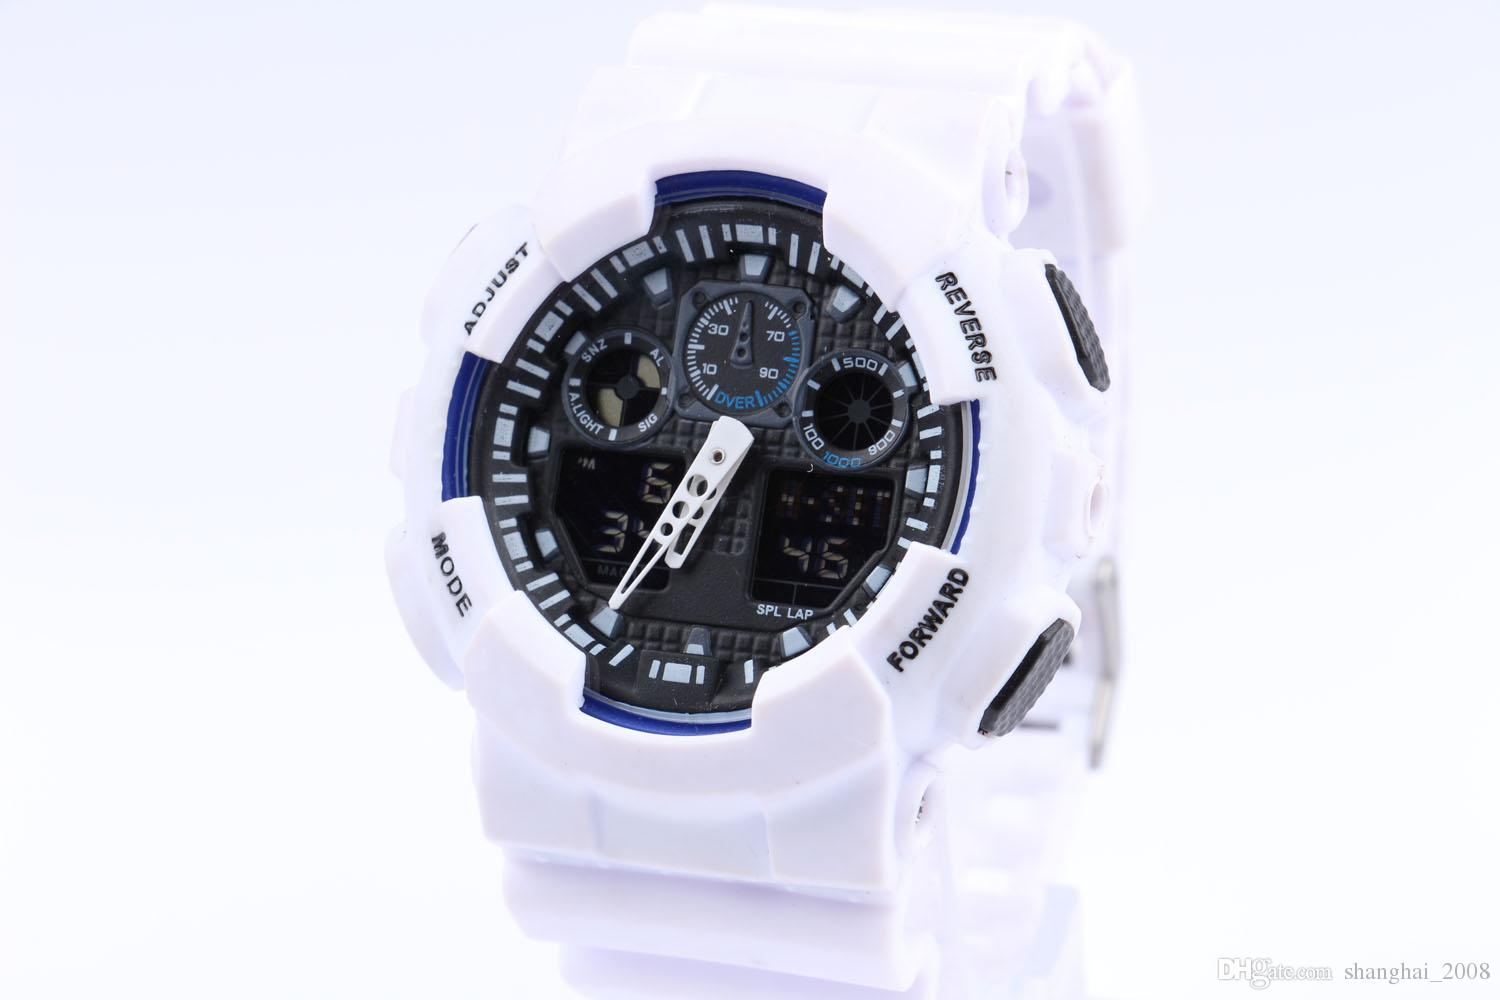 relogio men's sports watches, LED chronograph wristwatch, military watch, digital watch, good gift for men & boy, dropship